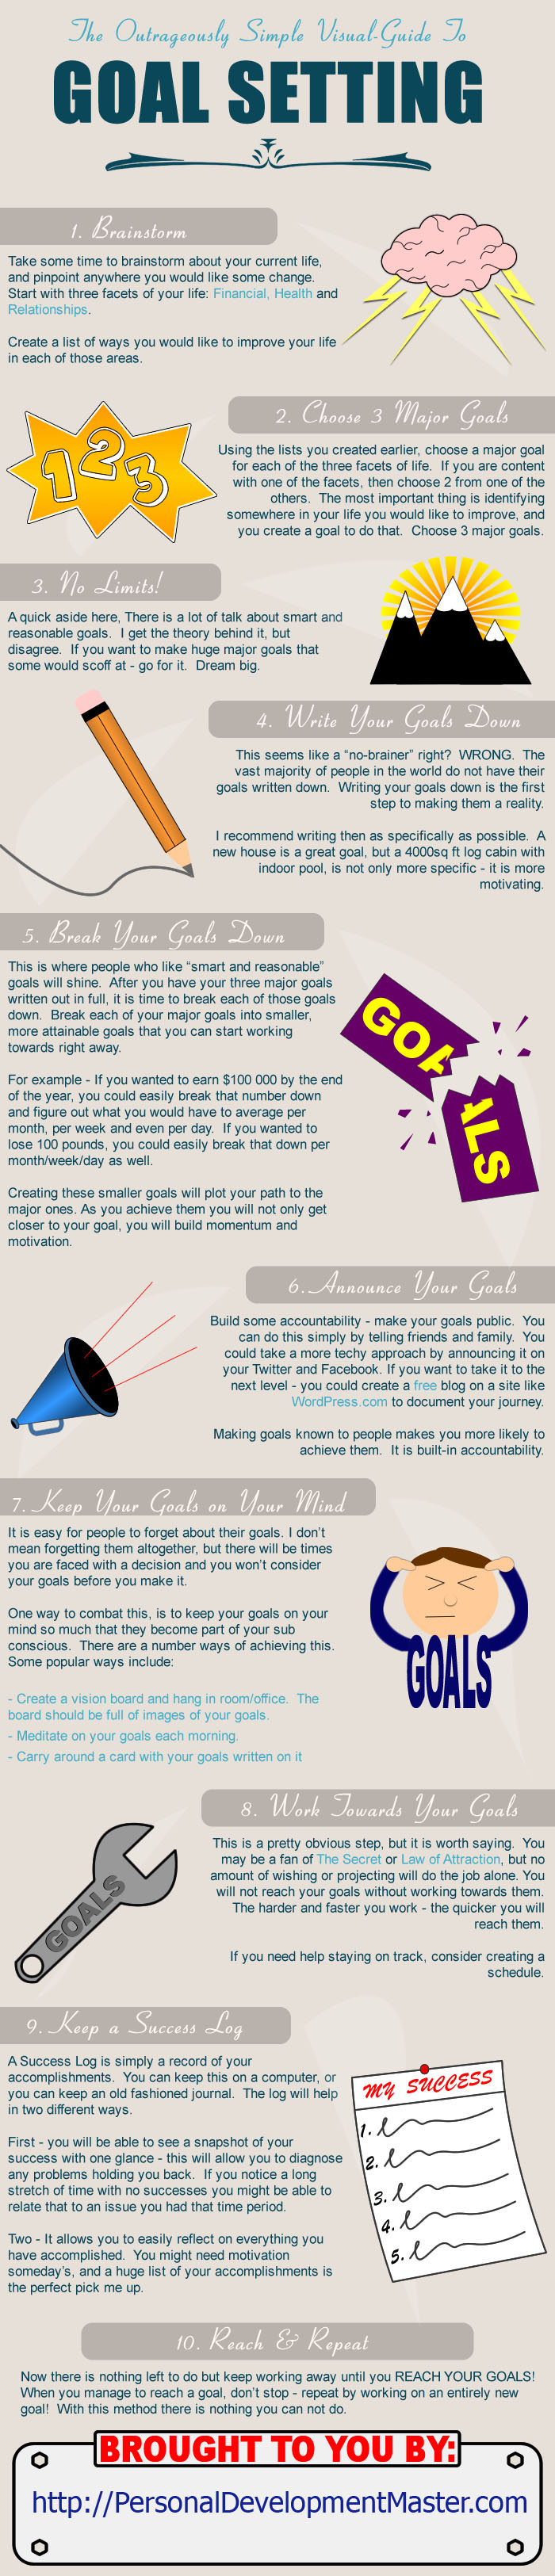 Goal Setting [Infographic]